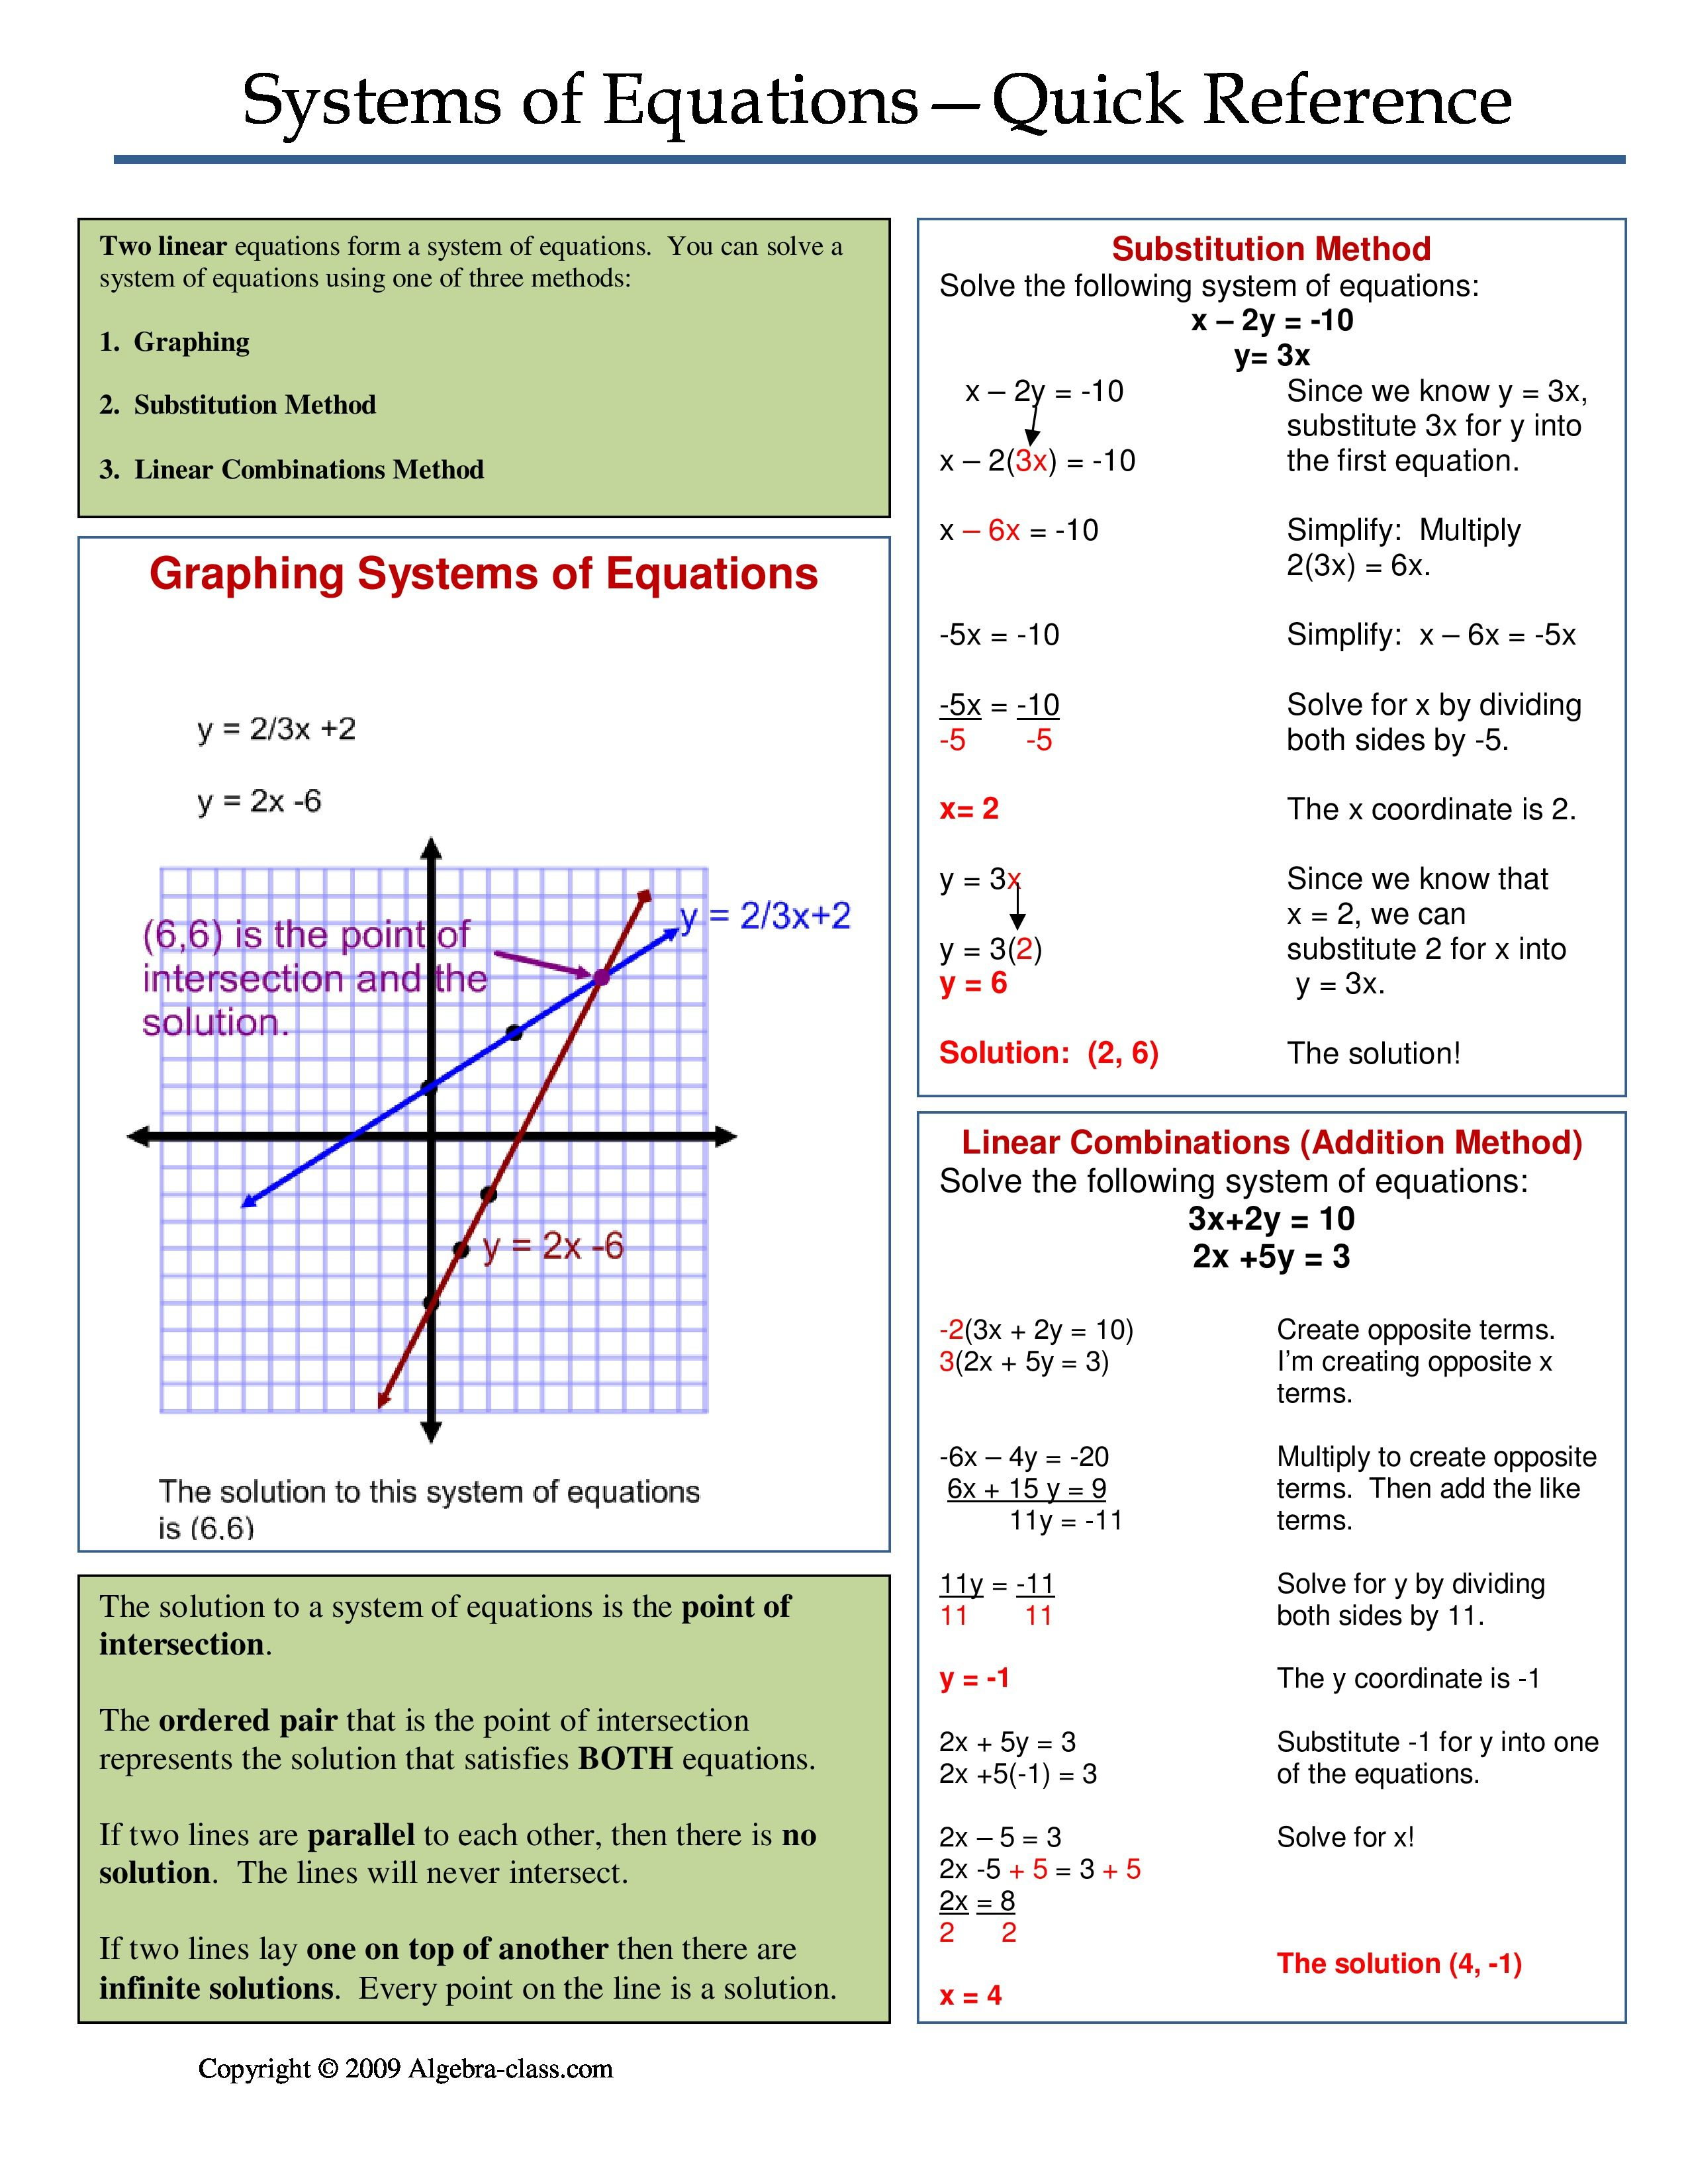 Pin By Michelle Pace On Algebra Cheat Sheets Systems Of Equations Equations Teaching Algebra